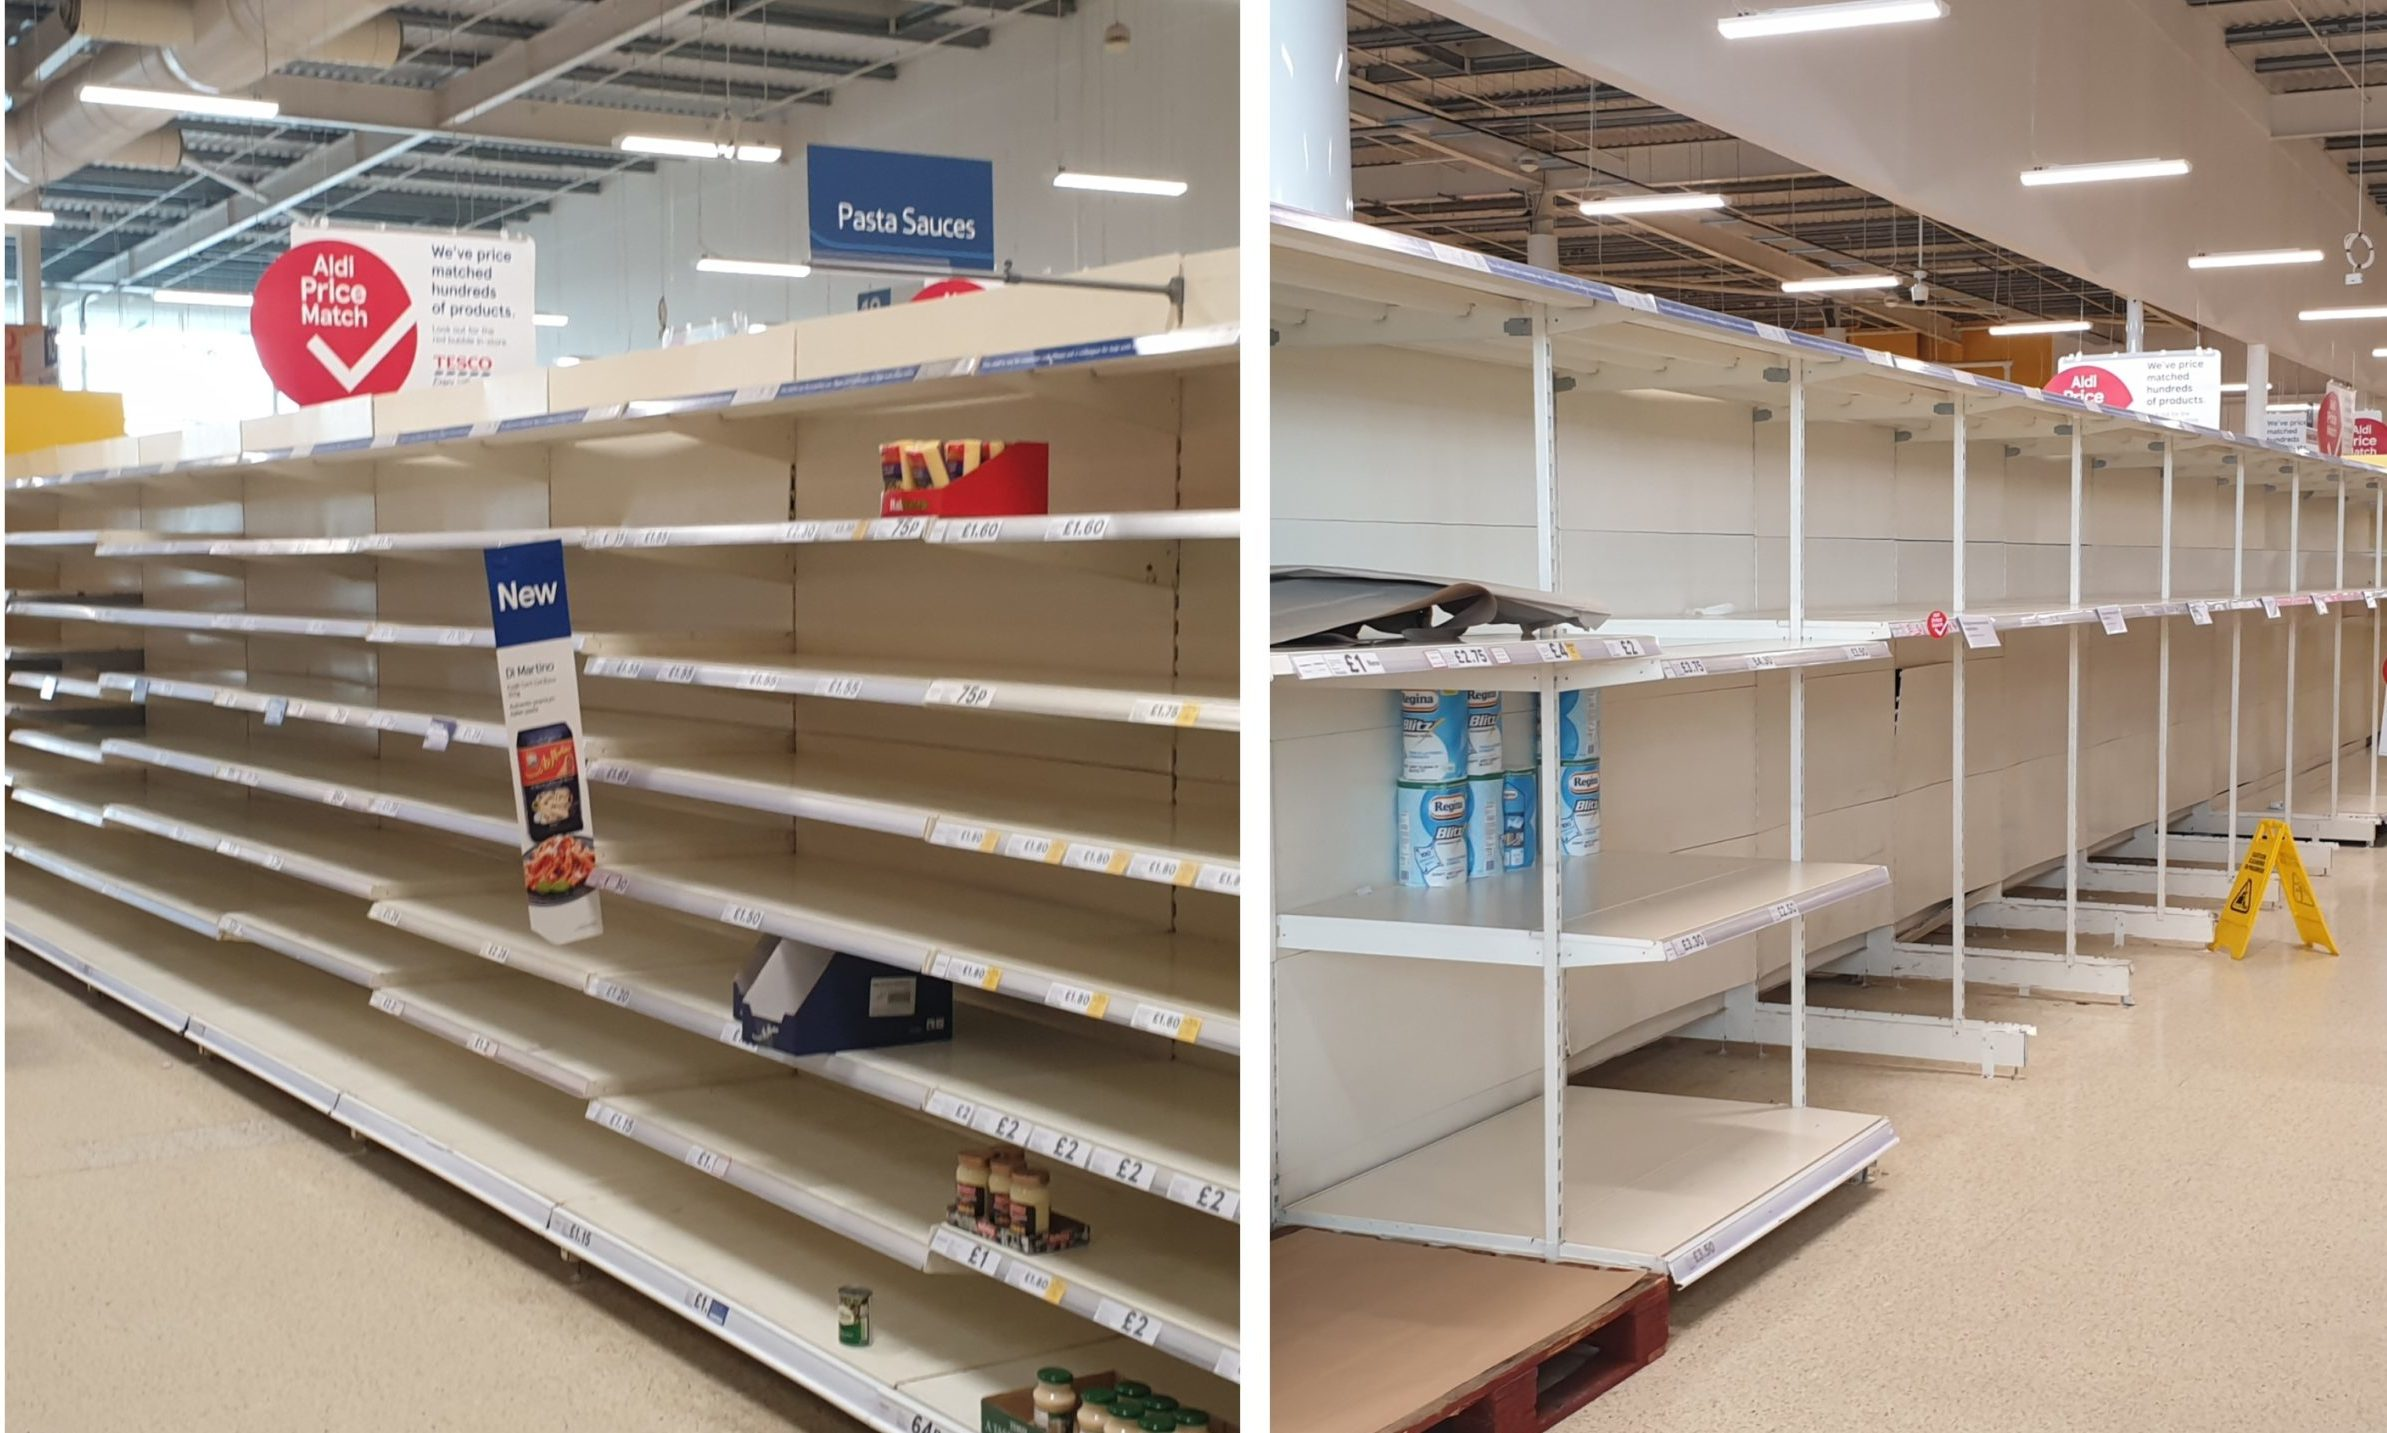 Panic buying has led to bare shelves in many supermarkets.